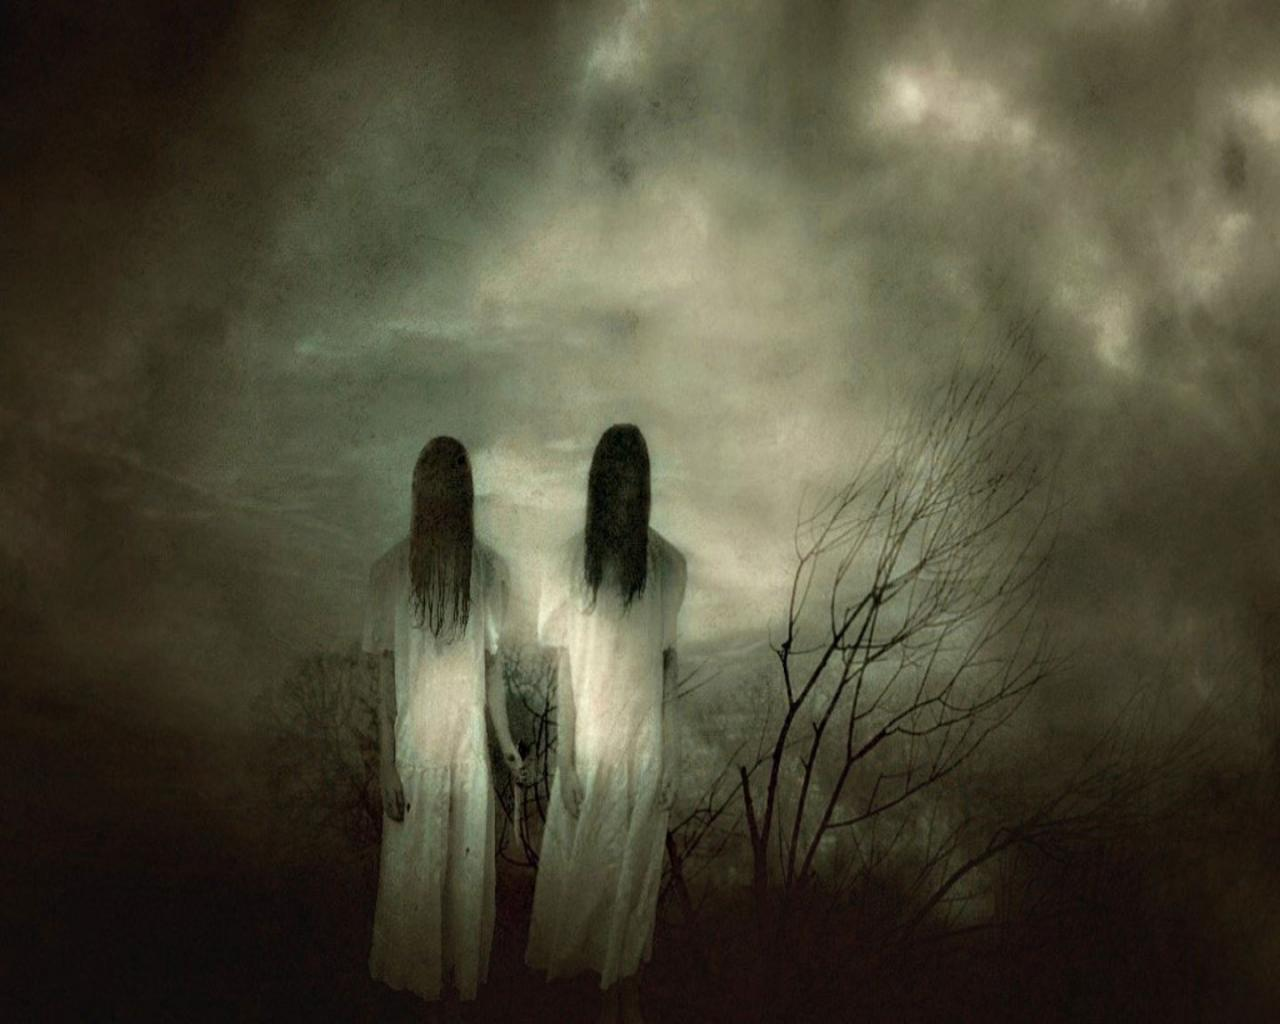 Ghosts wallpaper Scary Images of Real Ghosts hd wallpaper 1280x1024